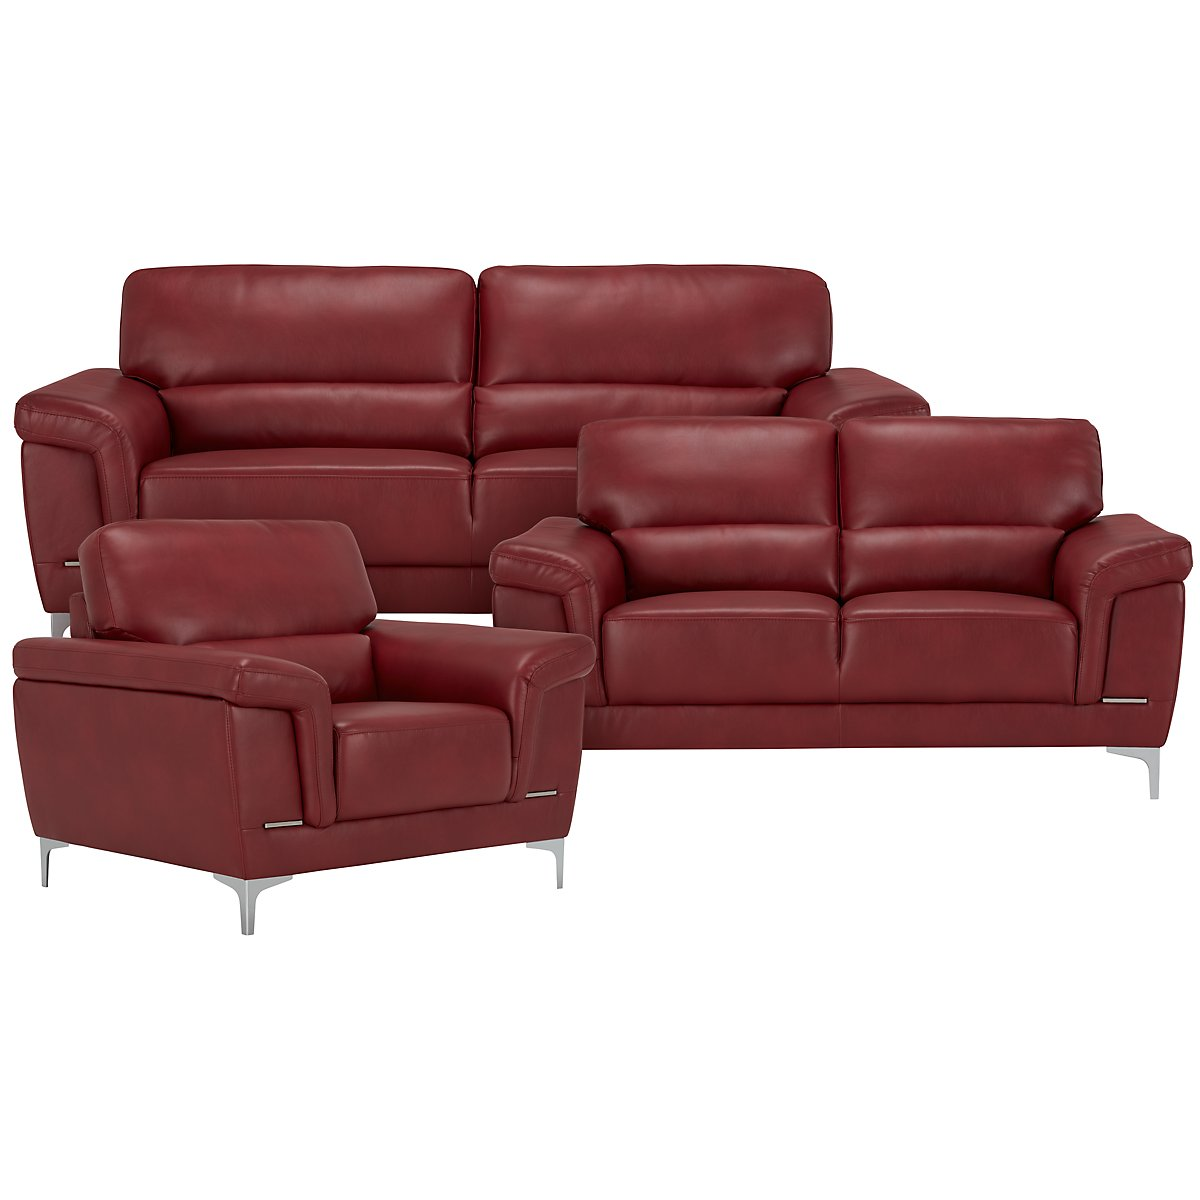 City Furniture: Enzo Red Microfiber Living Room